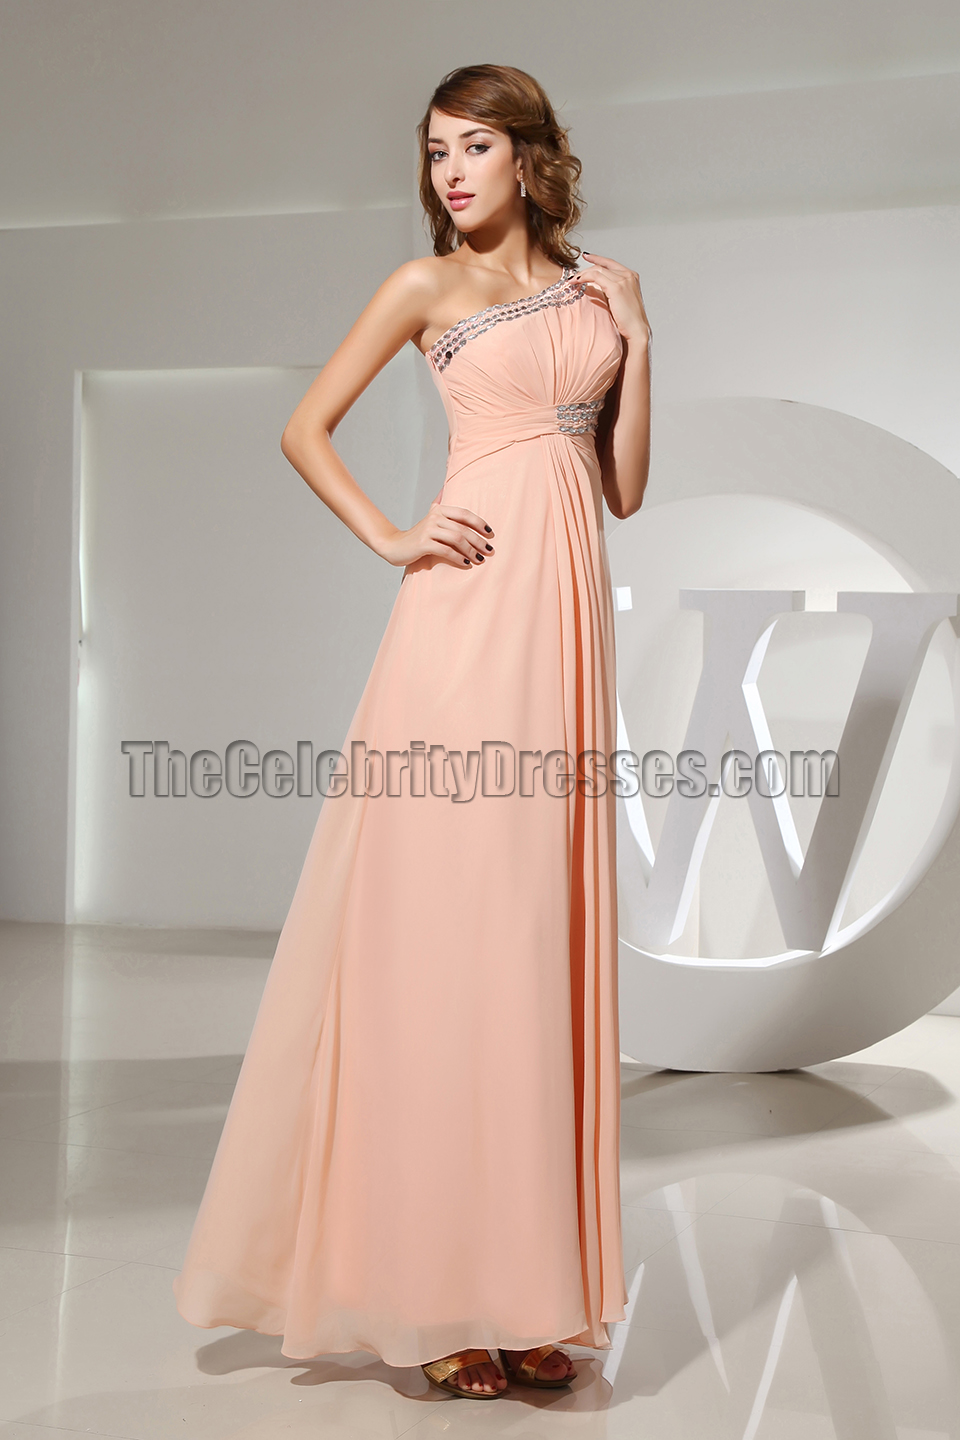 Celebrity Pictures and Wedding: Evening Wear Gown